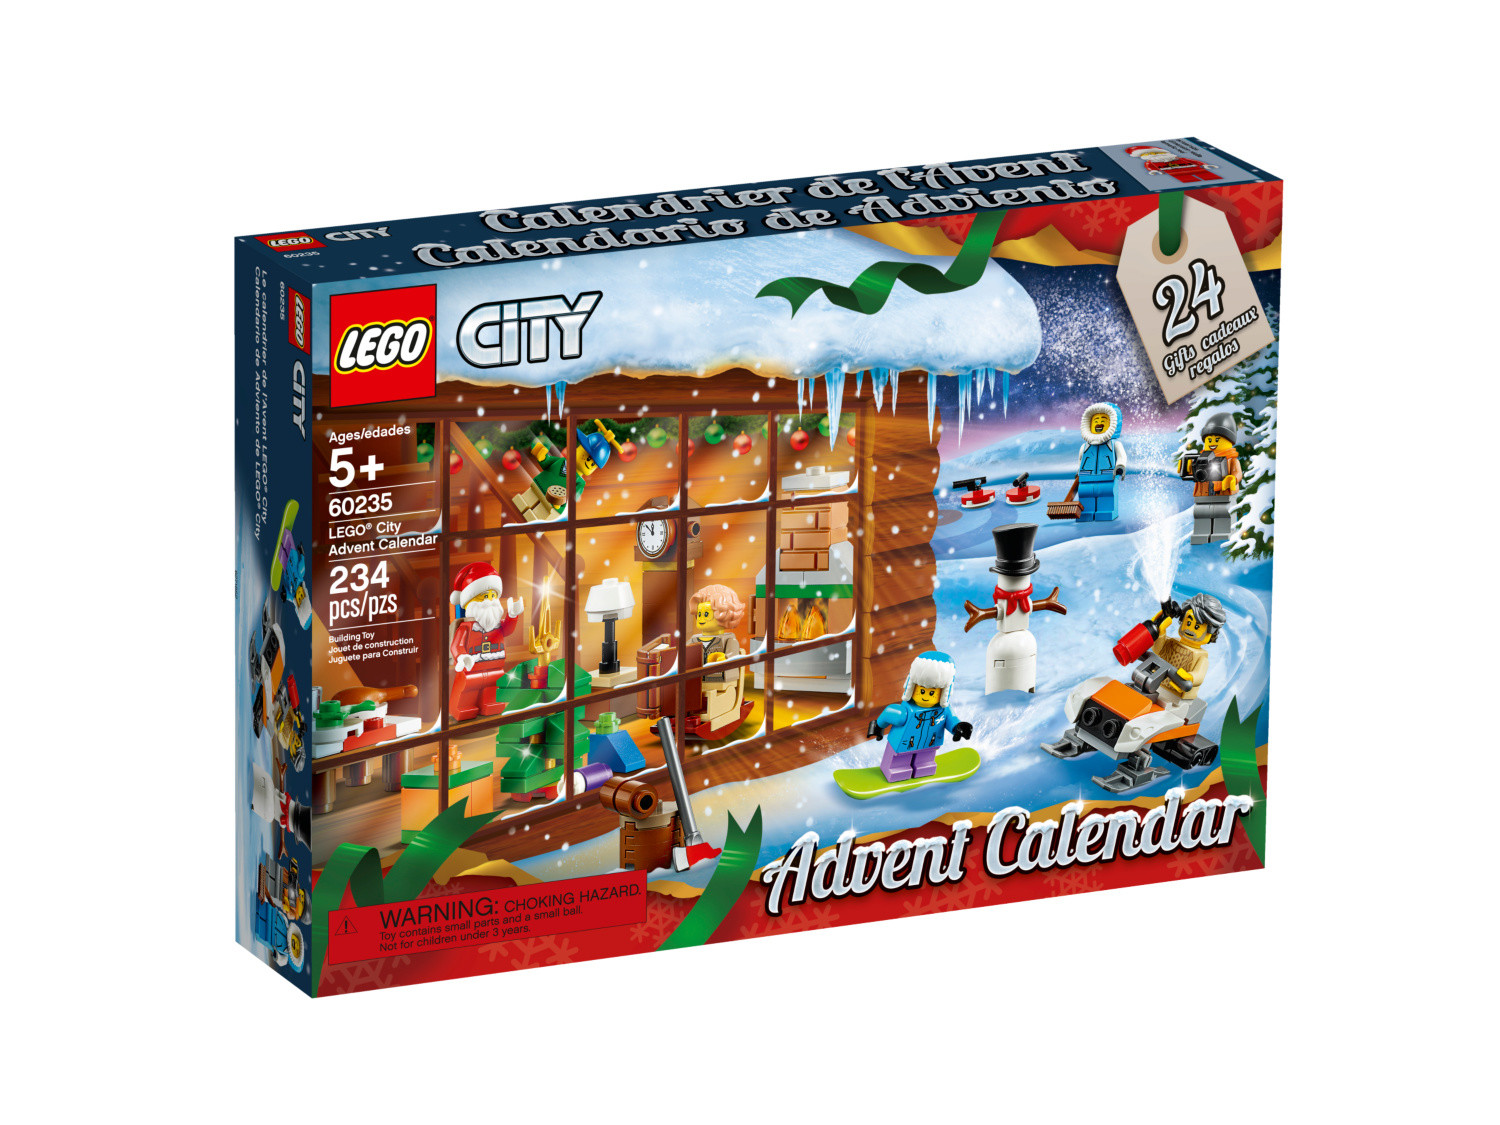 Calendrier Avent Lego Star Wars 2019.Advent Calendar 2019 Lego City Set 60235